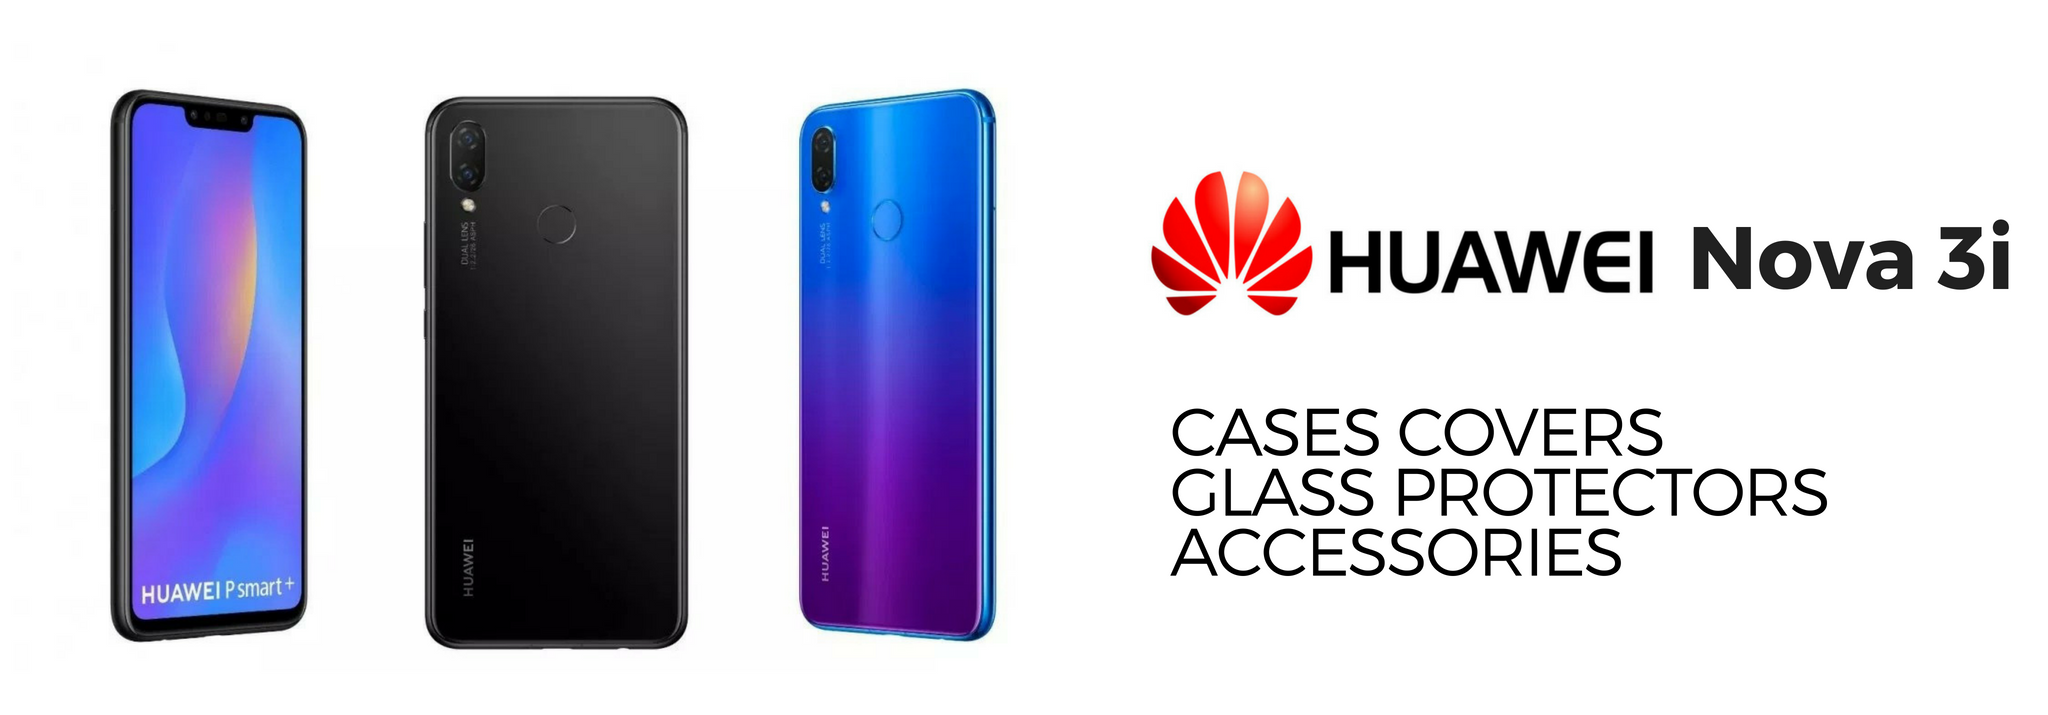 Huawei Nova 3i Covers Case Accessories Glass Protectors In Pakistan